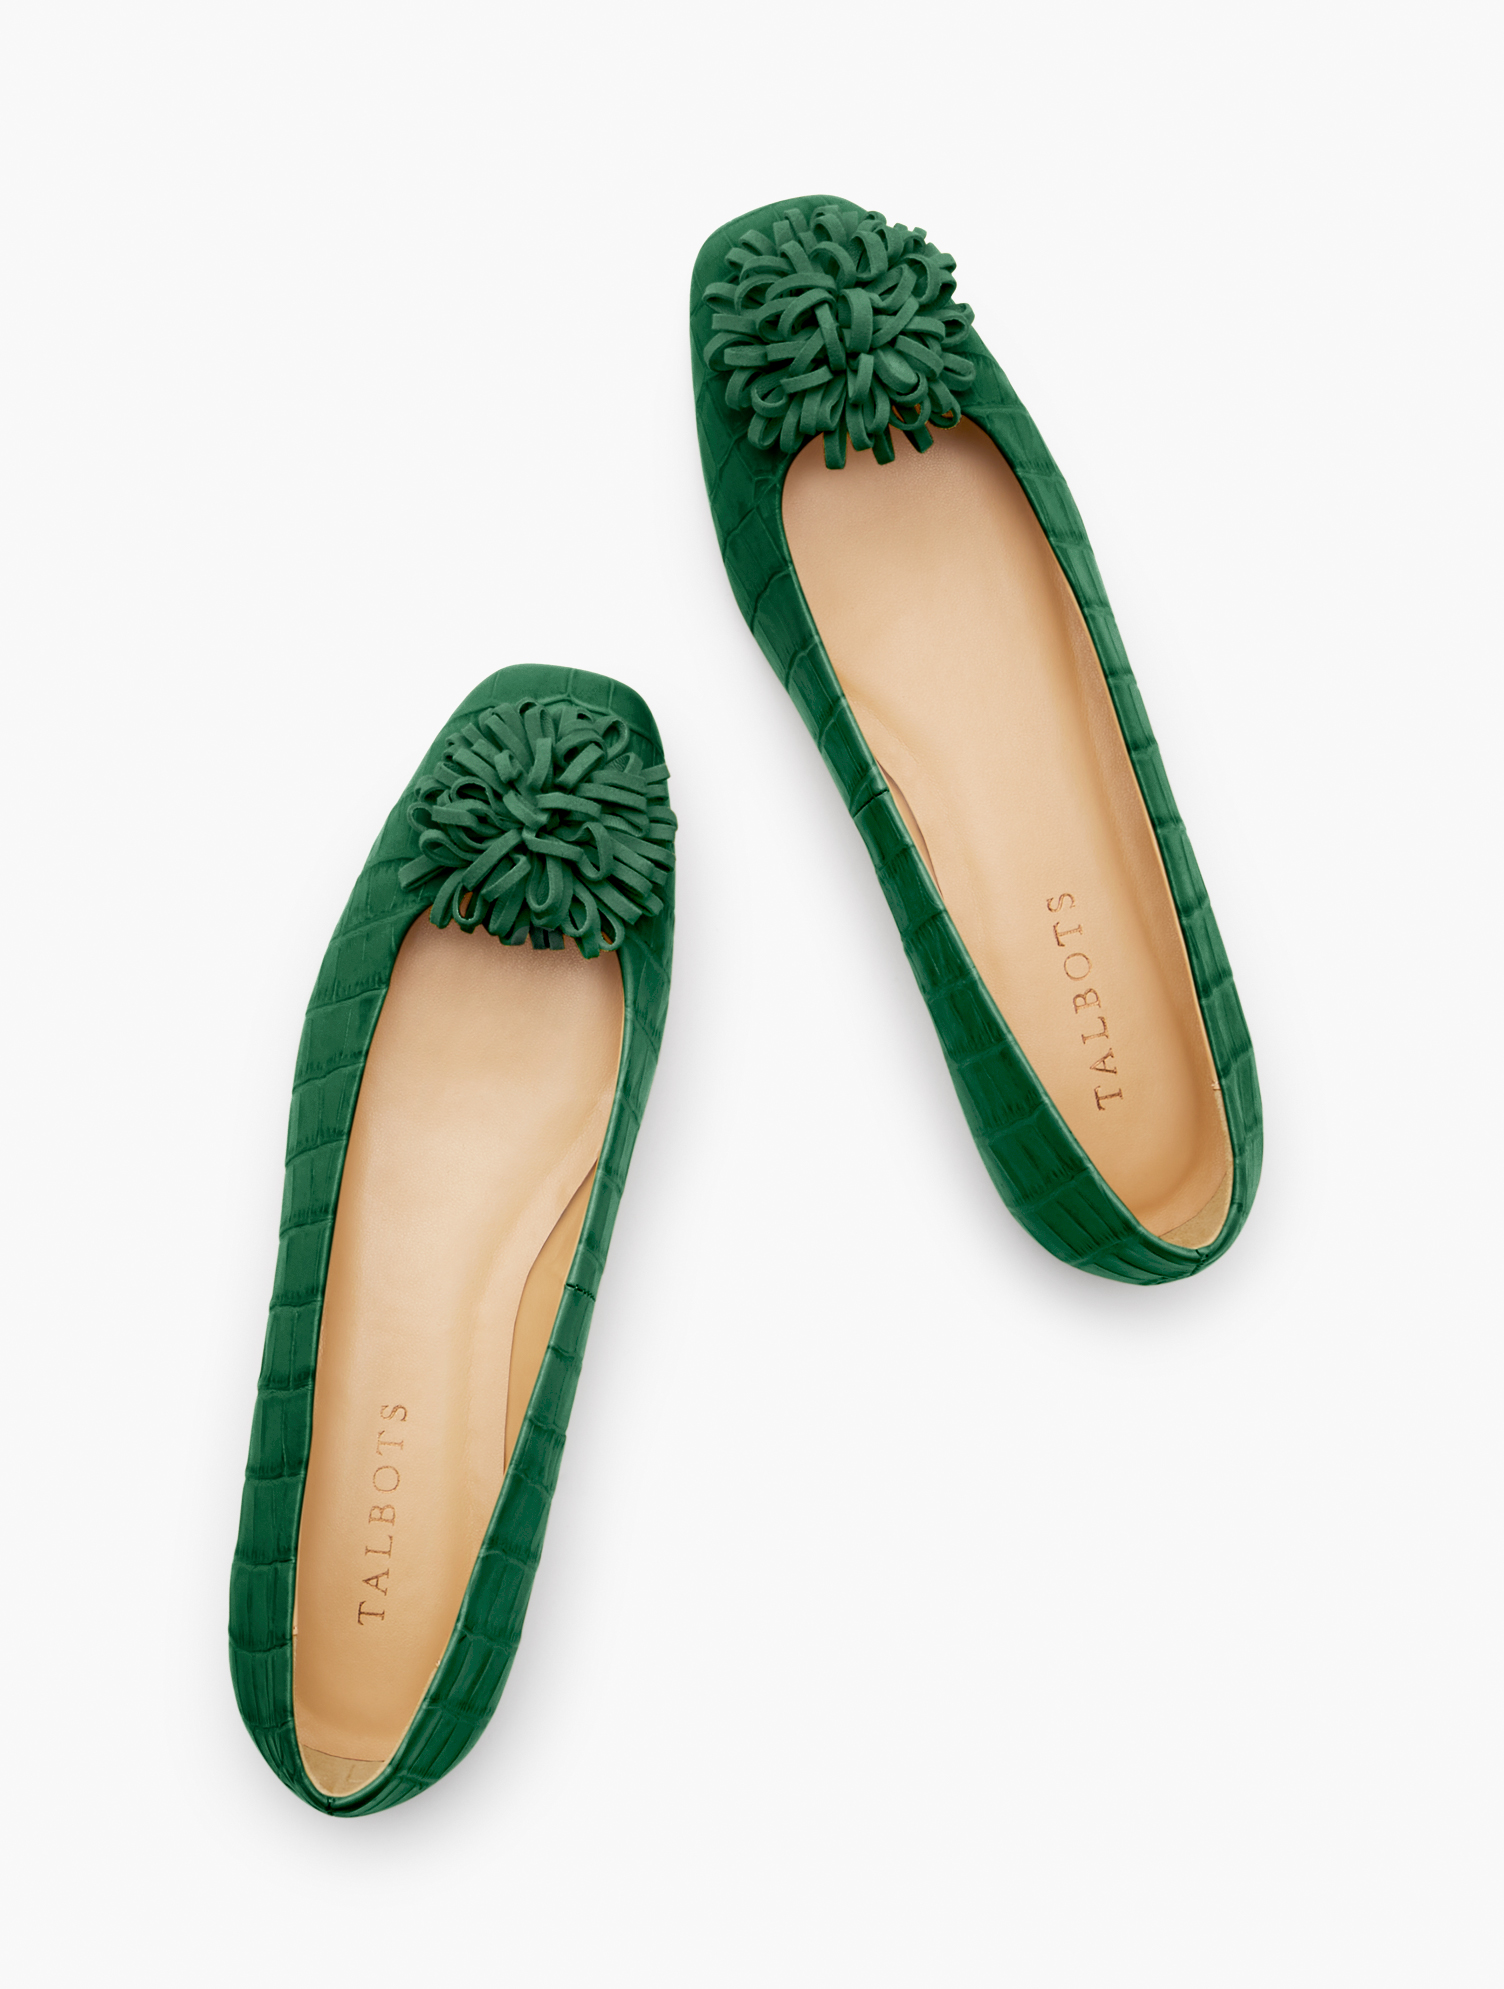 Retro Vintage Flats and Low Heel Shoes Stella Pom Pom Flats - Embossed Croc - Green - 8M Talbots $54.99 AT vintagedancer.com